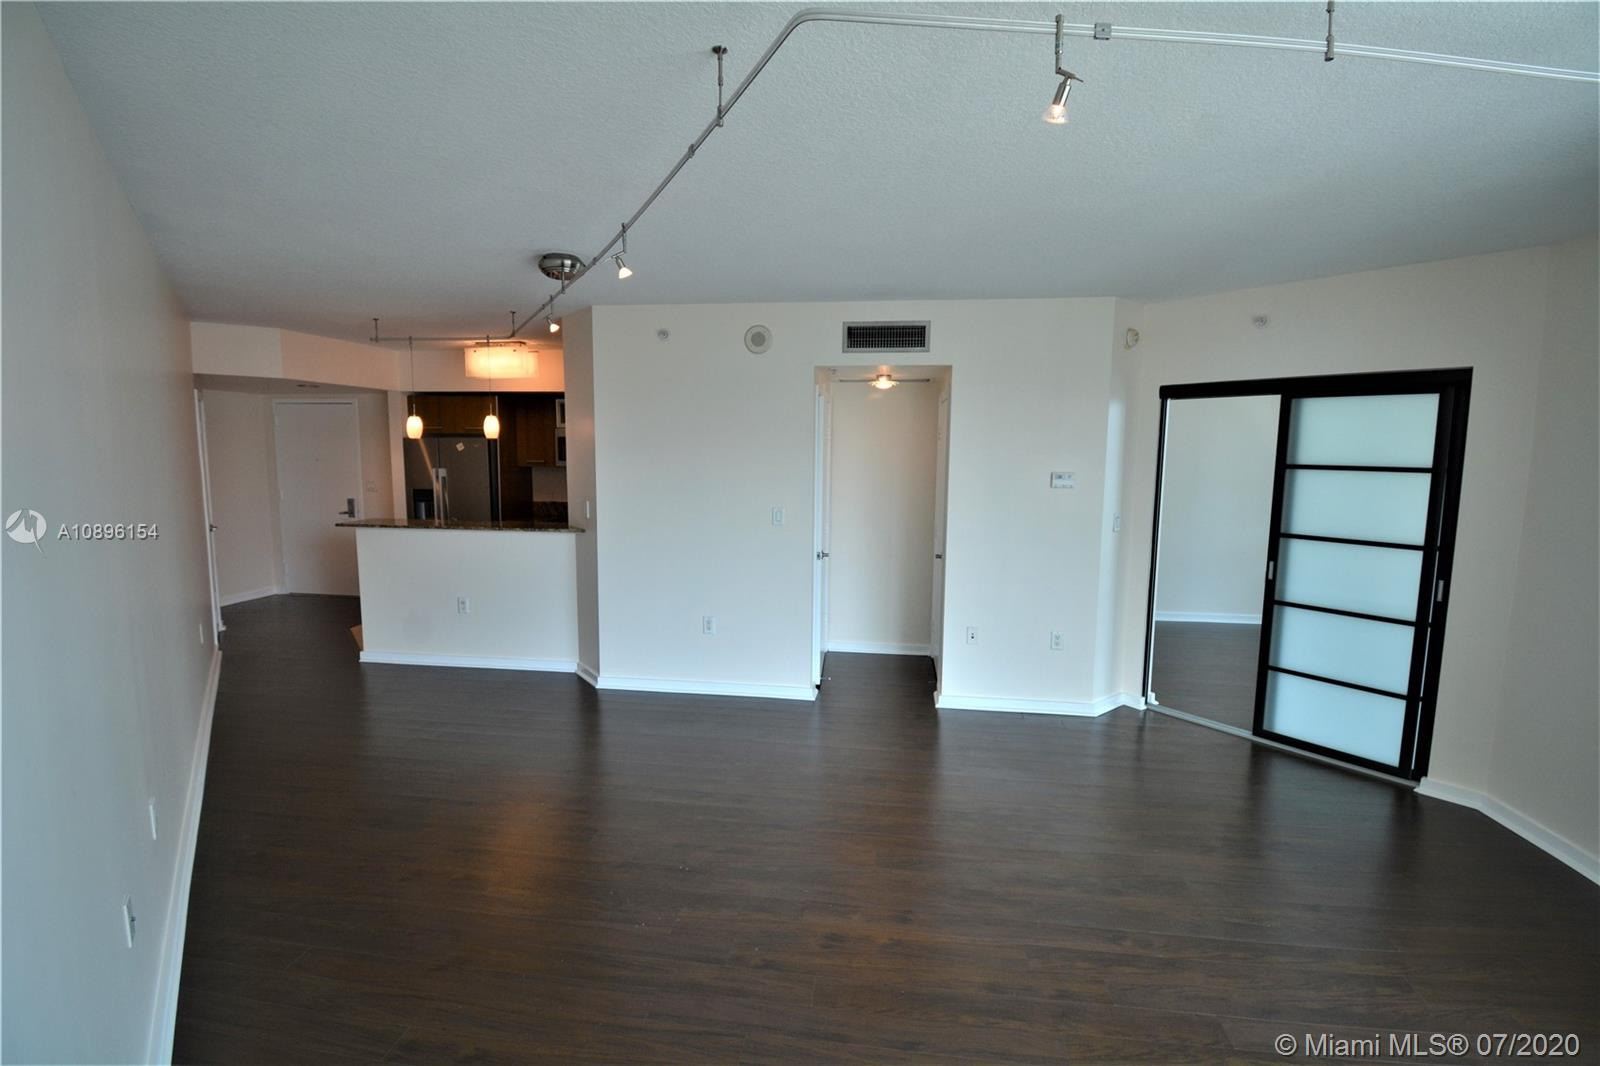 AMAZING 1/1 UNIT IN METROPOLIS, WOOD FLOORS, IN THE HEART OF DOWNTOWN DADELAND. OPEN KITCHEN WITH WOOD CABINETS, GRANITE COUNTER TOPS, S.S APPLIANCES, WASHER AND DRYER INSIDE UNIT, PANORAMIC VIEWS OF MIAMI'S GREEN TOPS AND EVEN BISCAYNE BAY, LARGE BALCONY. AMENITIES: 2 POOLS, JACUZZY, SAUNA, GYM, FULL SECURITY, POOL TABLE, VALET PARKING, CLOSE TO METRORAIL, WALK EVERYWHERE!. EASY TO SHOW. AGENTS MUST ACCOMPANY TENANTS TO SEE THE PROPERTY.